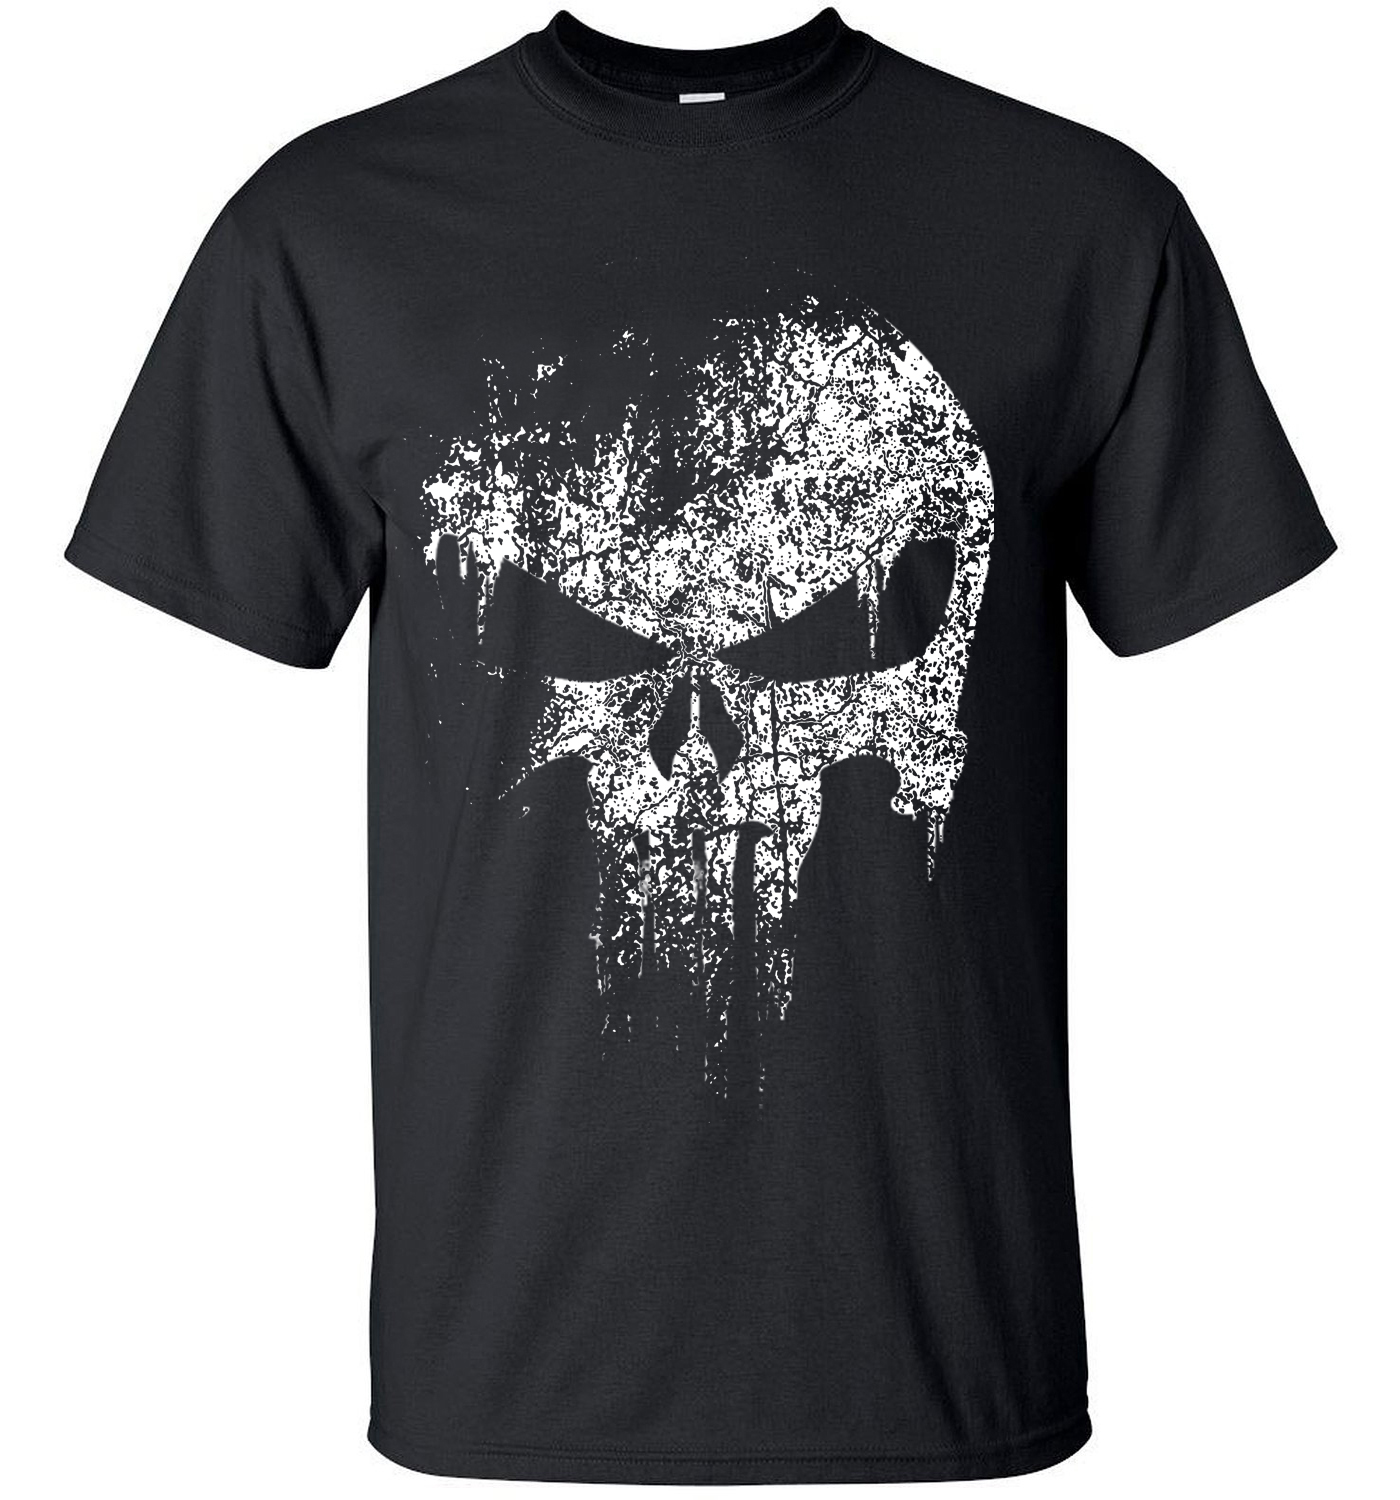 2020 Streetwear Punisher Skull Hip Hop Supper Hero T Shirts Men T-Shirt Tops Tees Top Brand Slim Clothing Mma Pp Crossfit